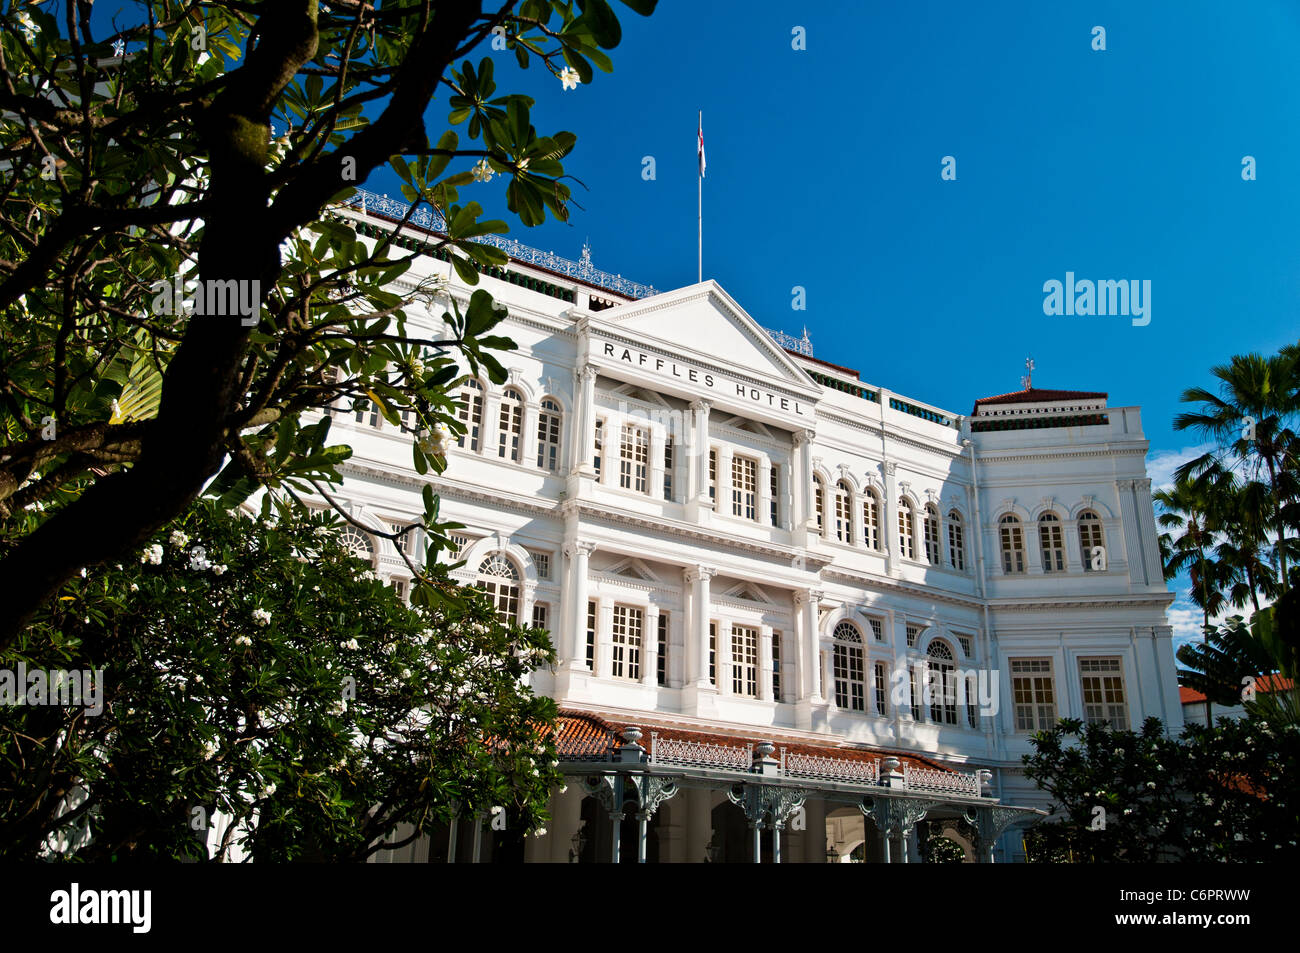 View of Raffles Hotel, a luxury colonial-style hotel, Singapore - Stock Image